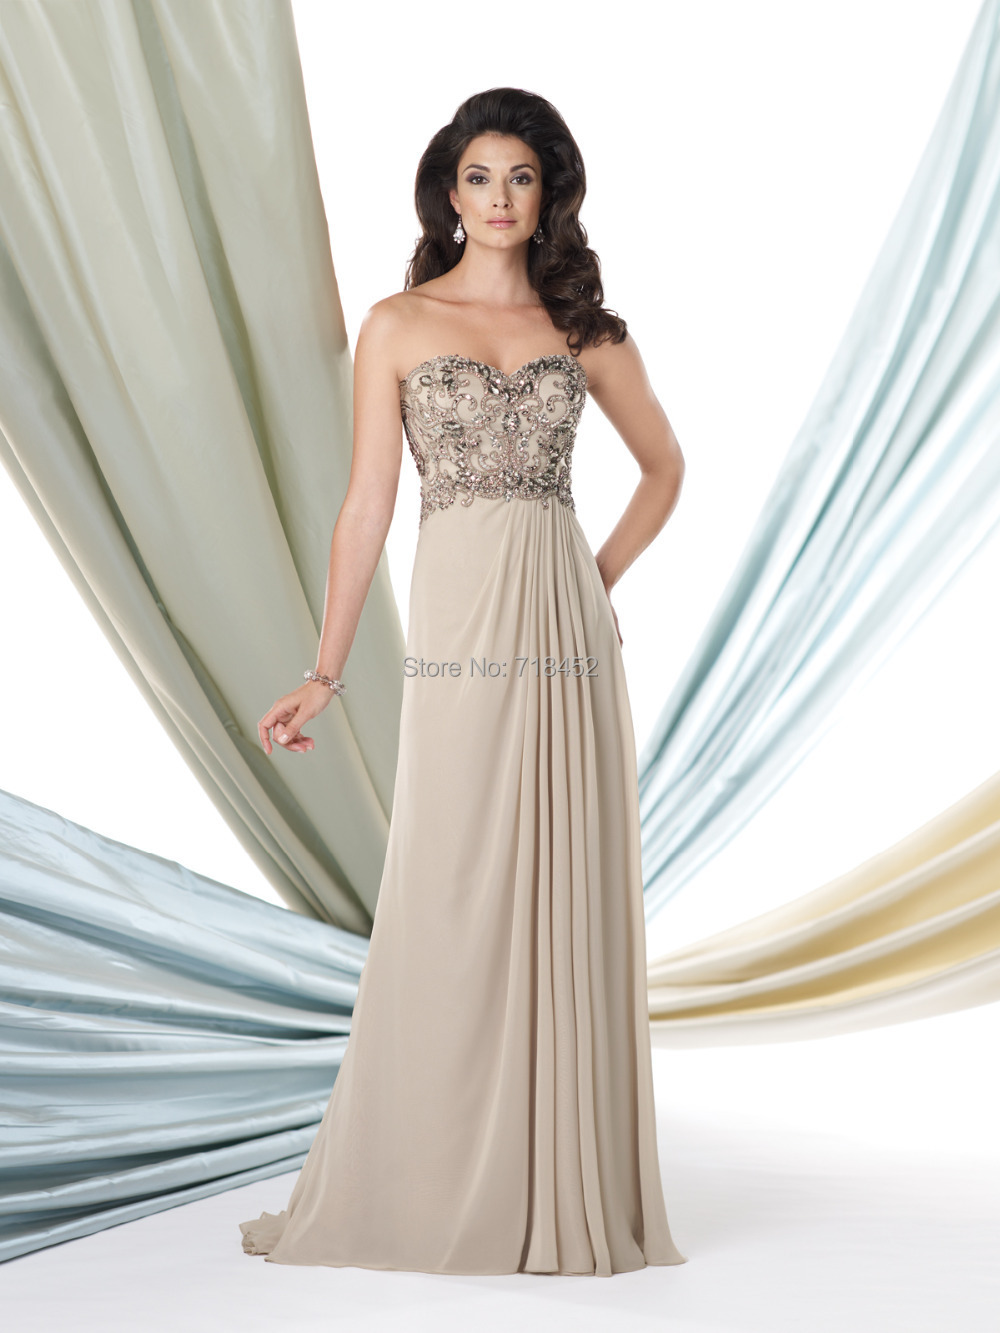 Beach Style Mother Of The Groom Dresses - Short Hair Fashions